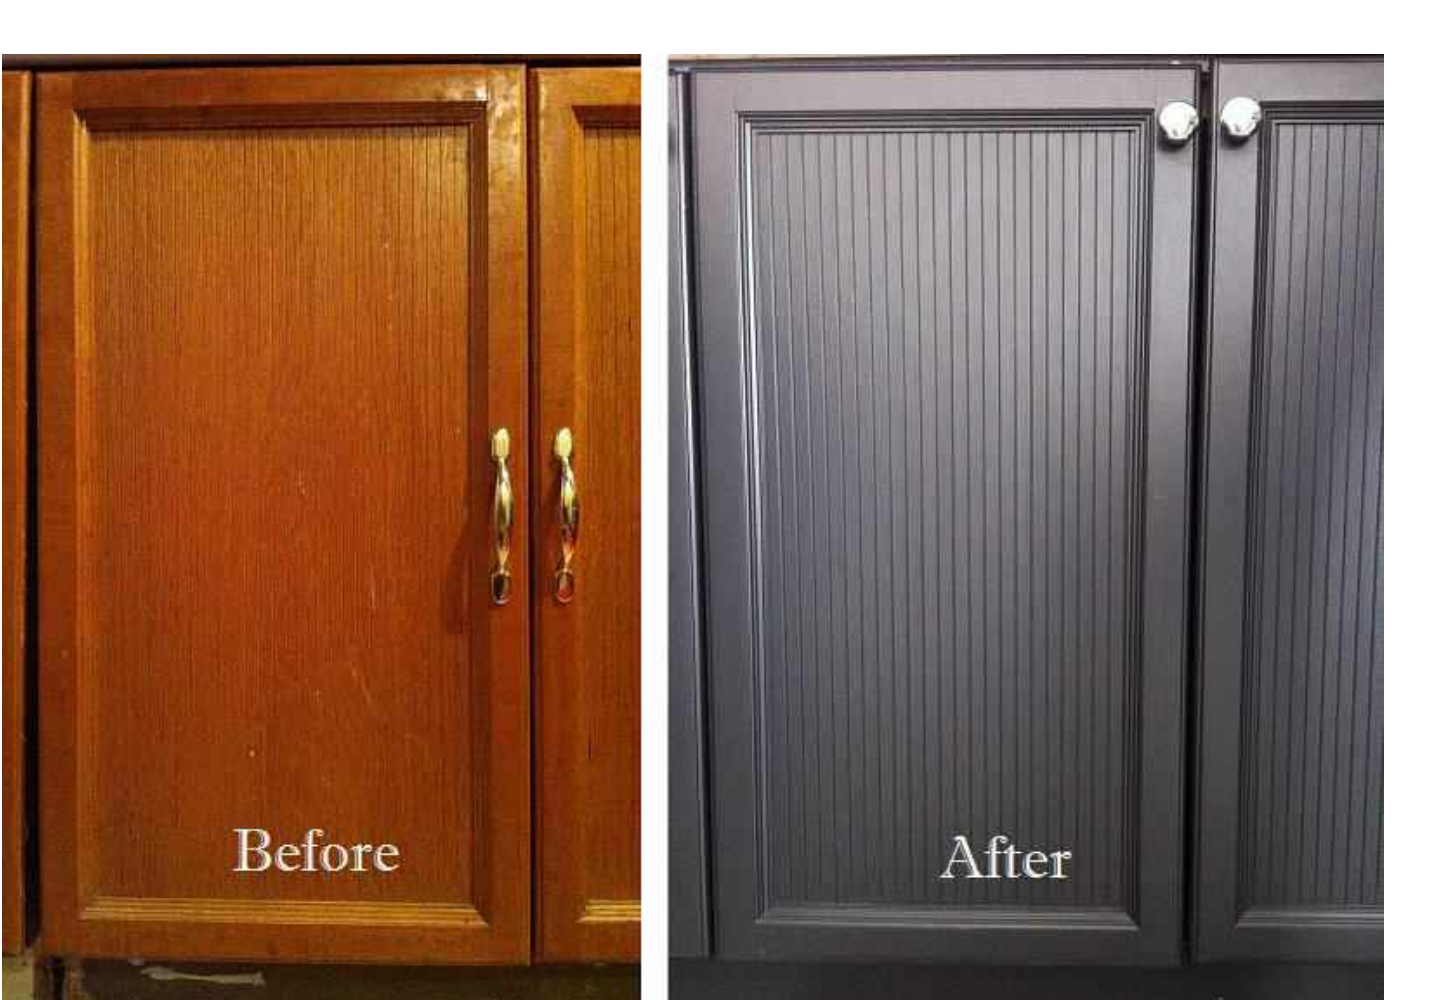 Cost to refinish cabinets spillo caves for Cost to refinish cabinets